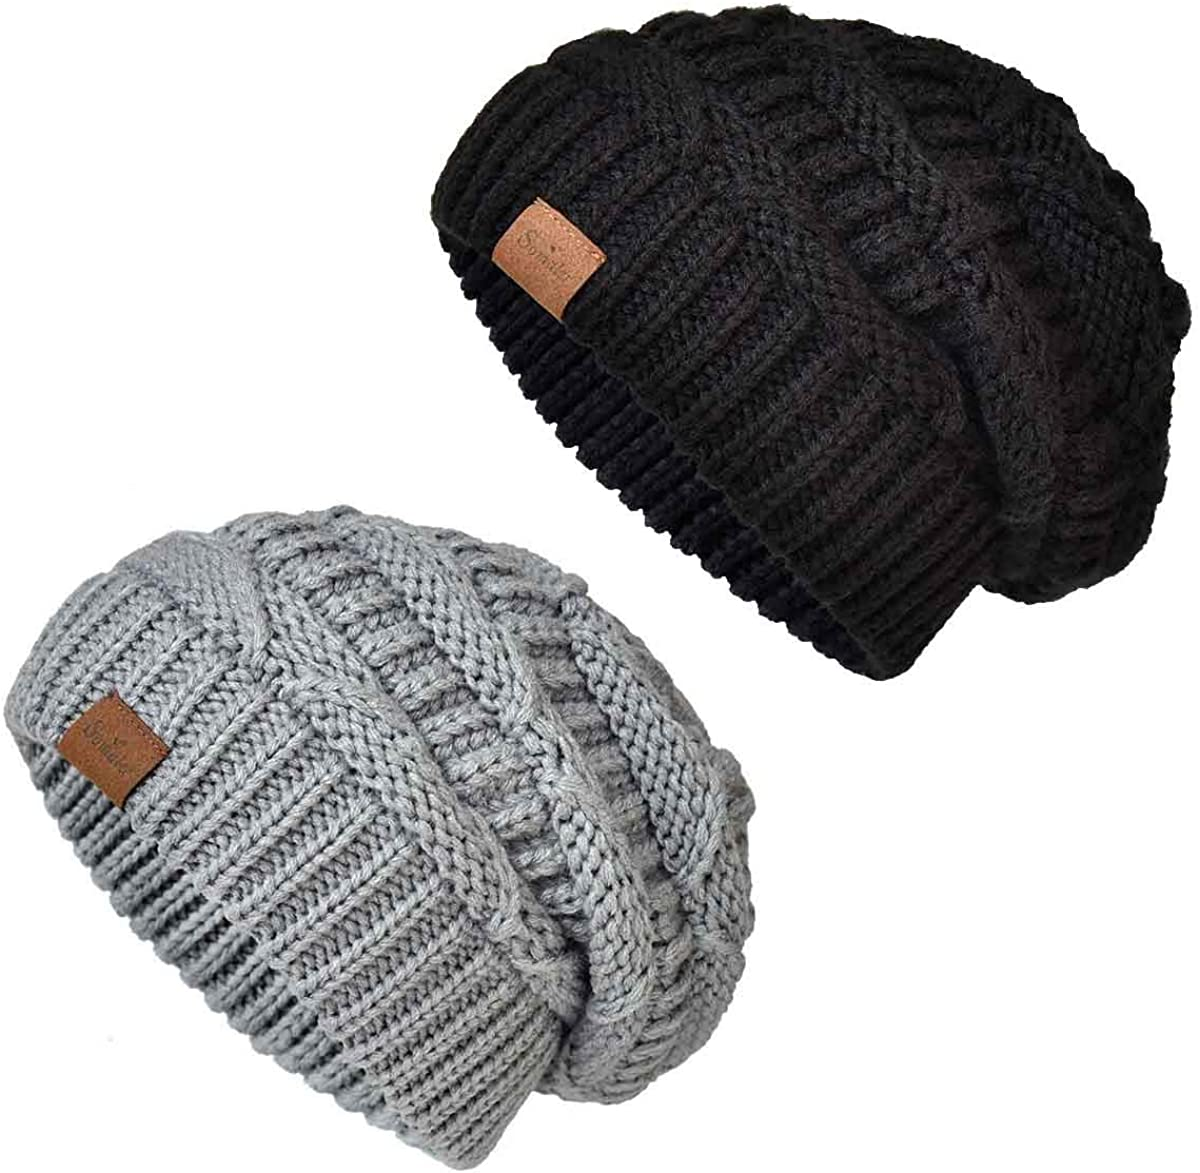 Somaler Knit Beanie Max 55% OFF Hat for Oversize Dealing full price reduction Women Winter Chunky Slouchy